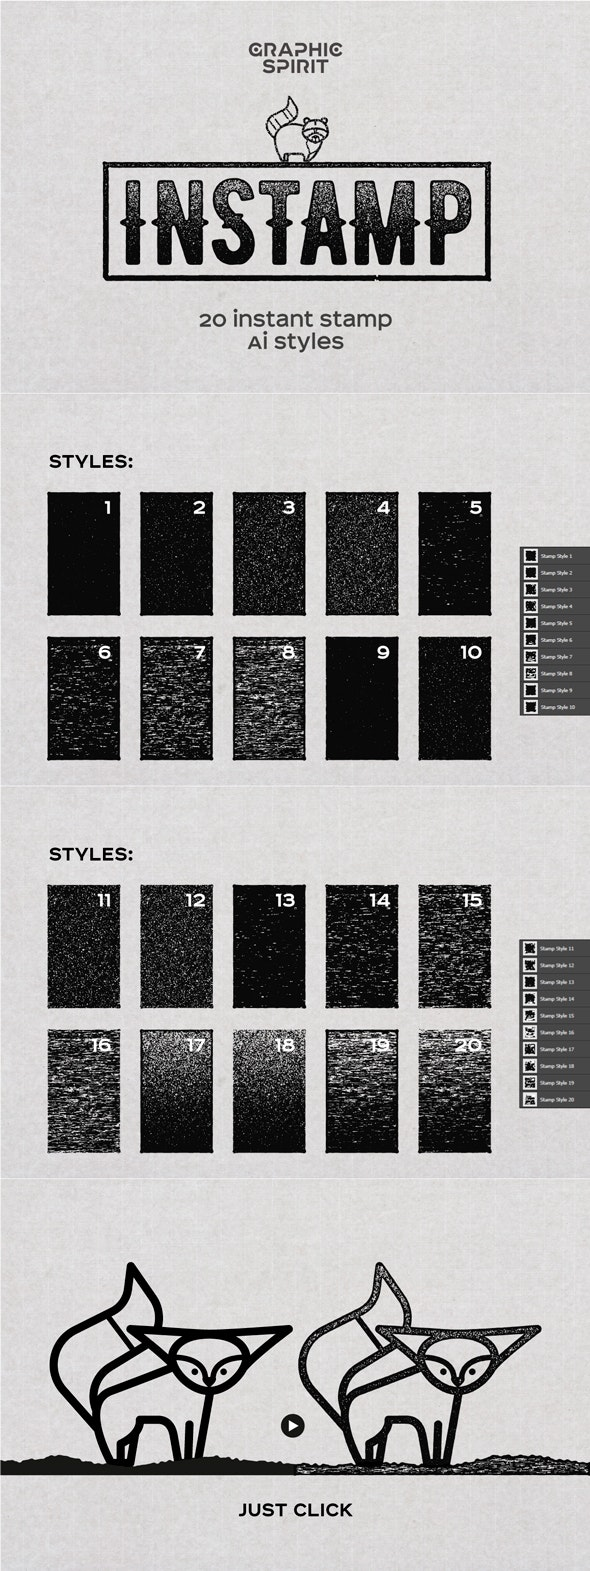 INSTAMP Instant Stamp AI Styles - Styles Illustrator